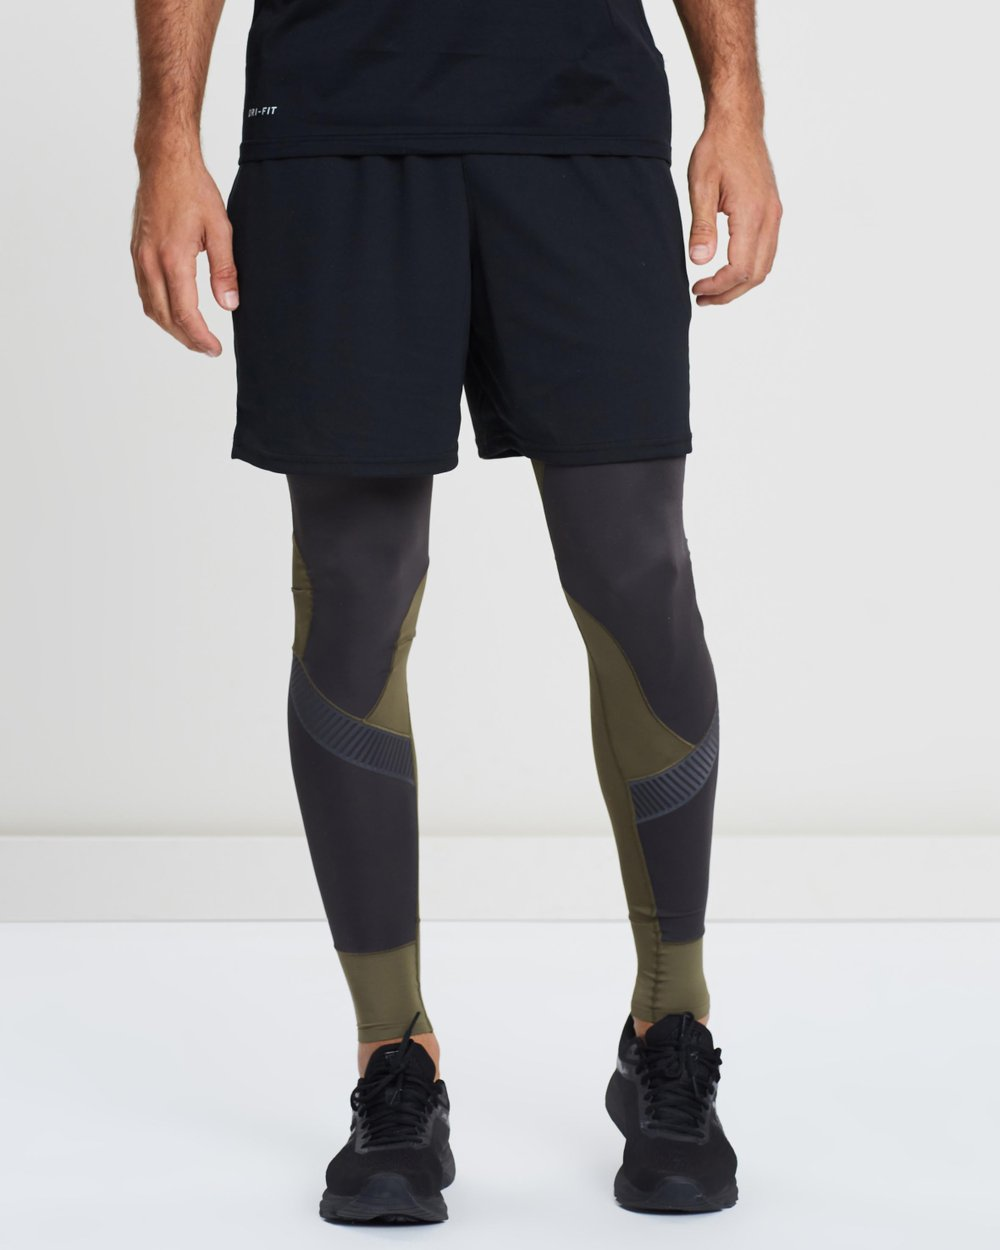 Skins DNAmic Mens Long Tights Black Free AUS Delivery!